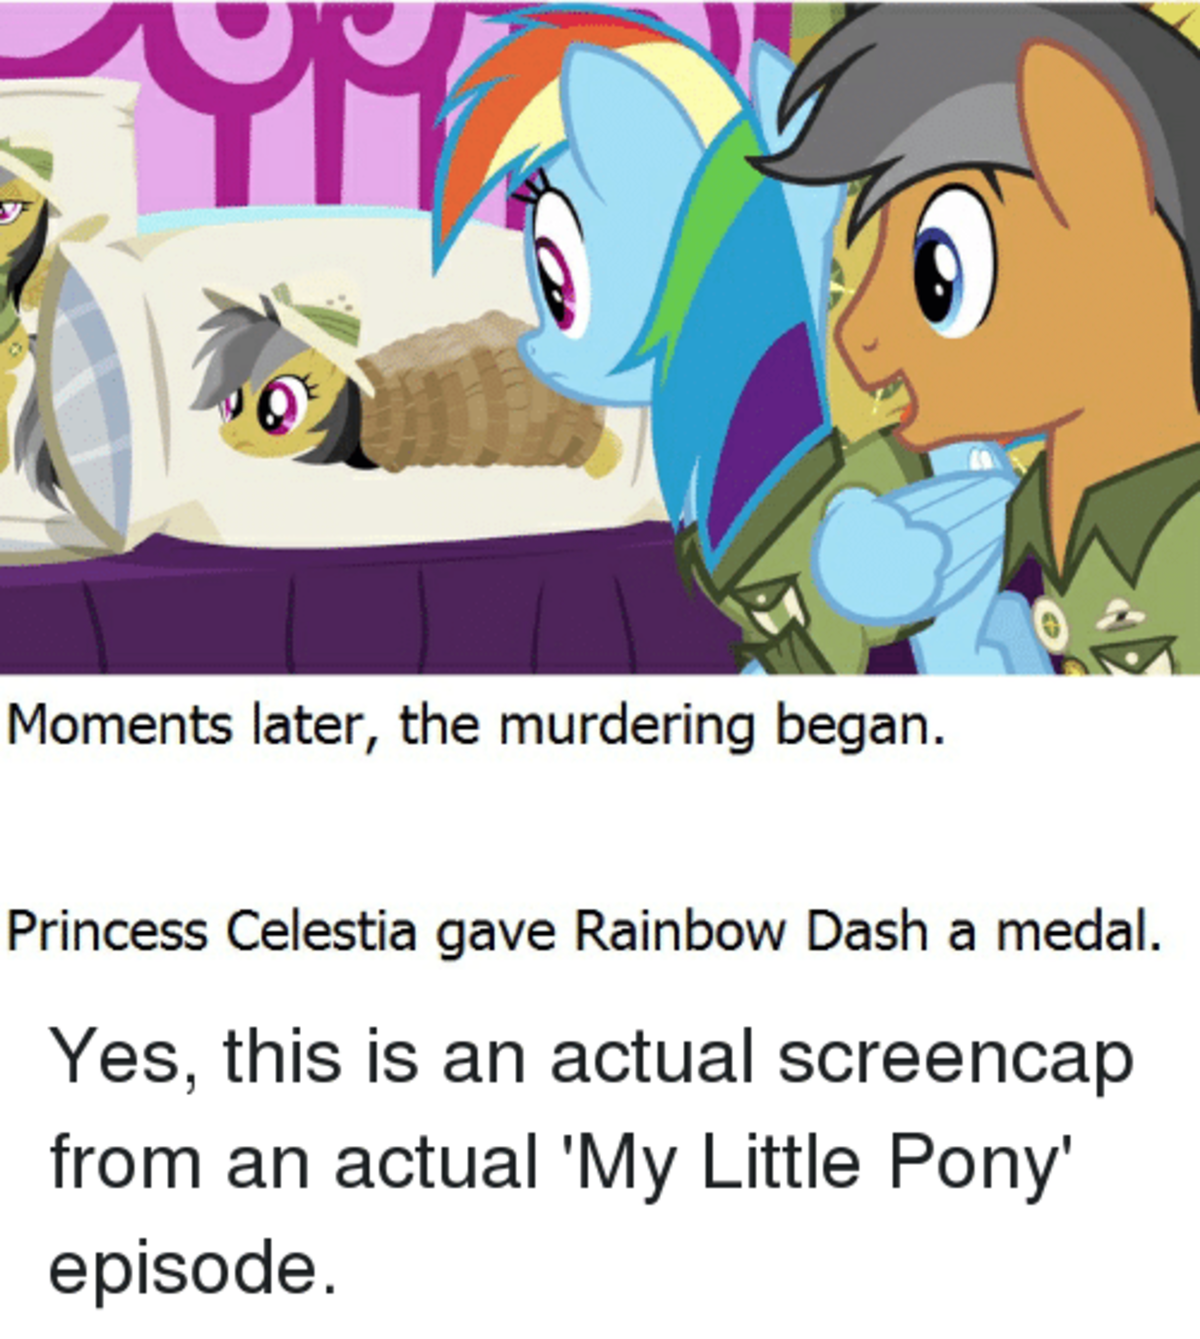 Hash. .. No! It's not supposed to be like this! Equestria is supposed to be a socially enlightened fantasy world where everyone has a true place and everyone can be love